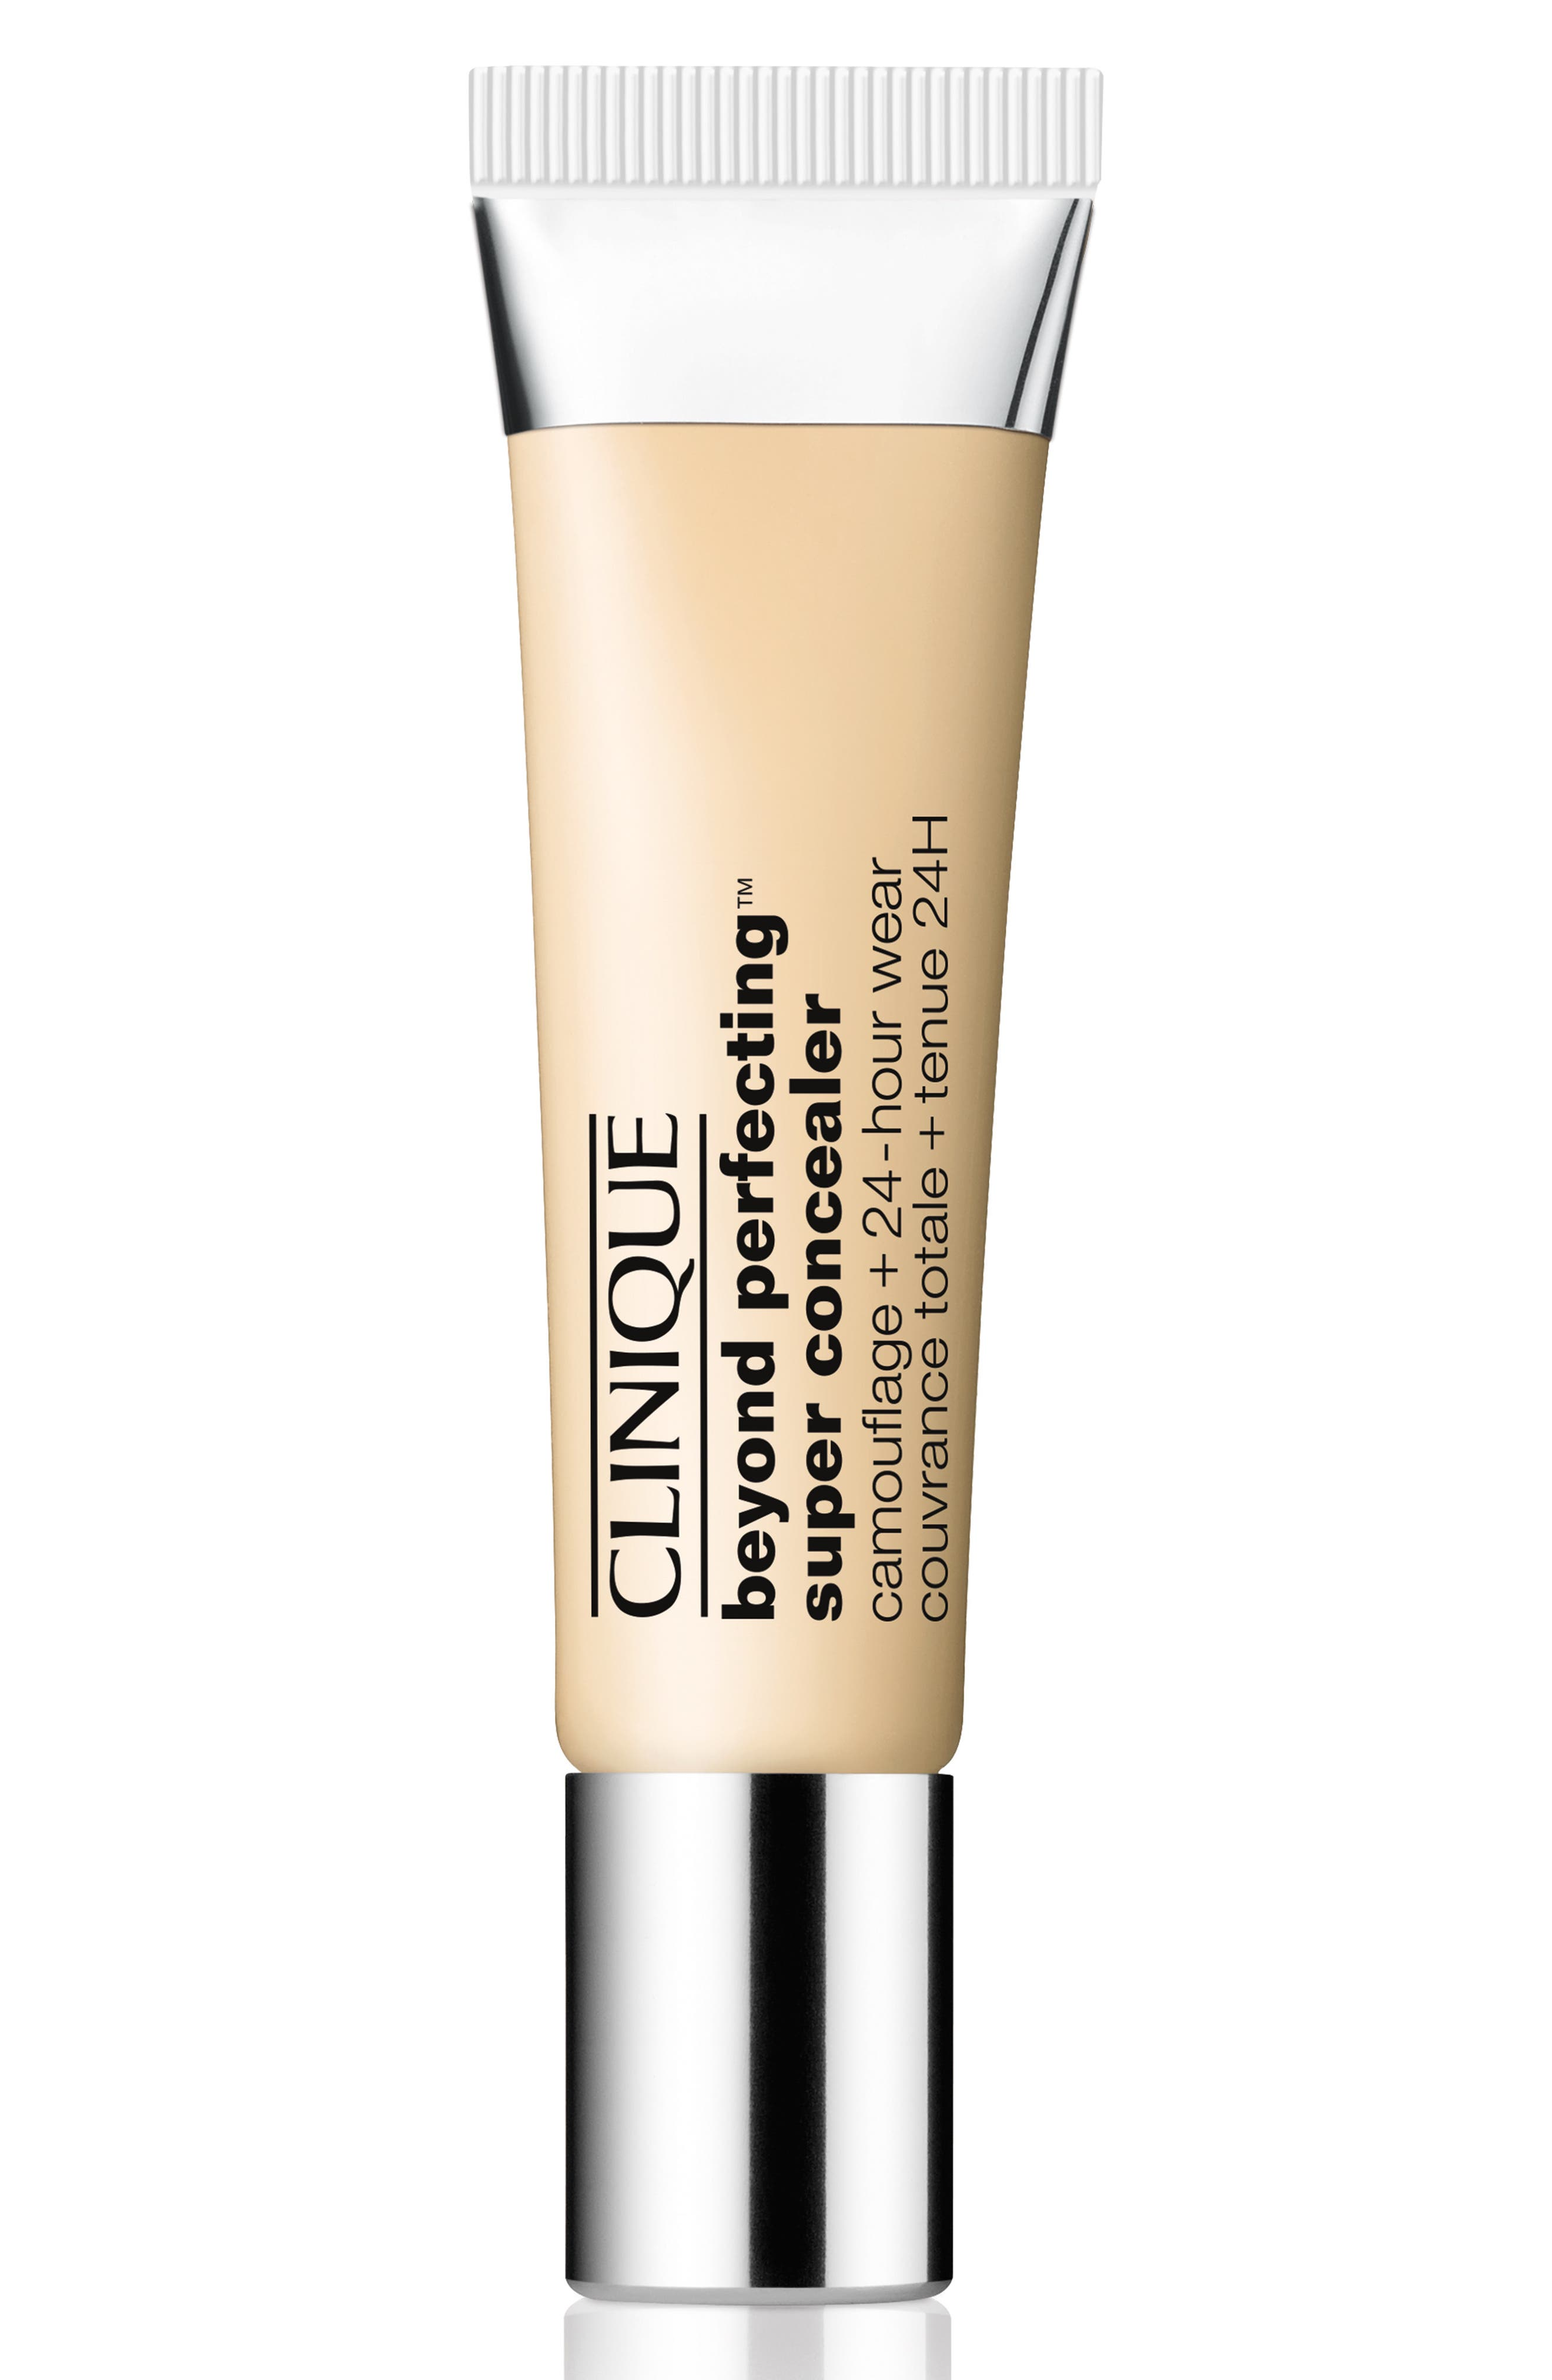 Alternate Image 1 Selected - Clinique Beyond Perfecting Super Concealer Camouflage + 24-Hour Wear